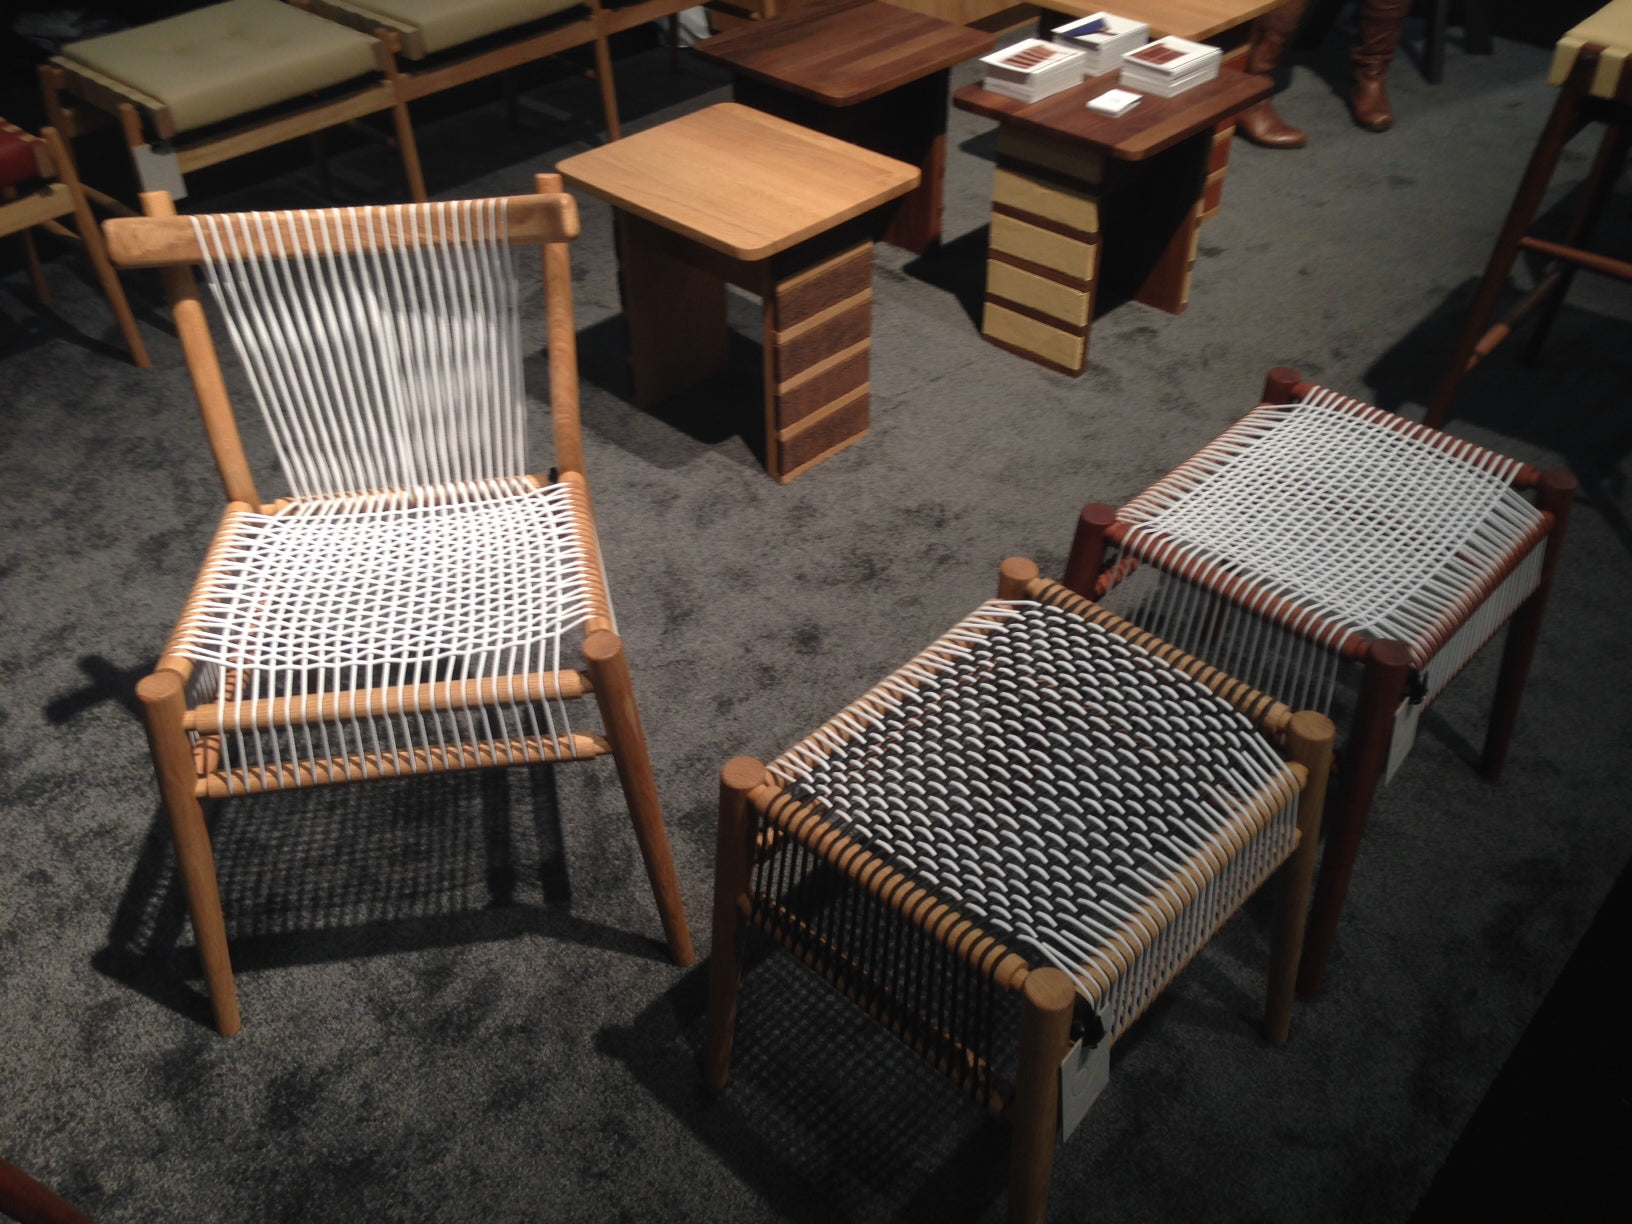 ICFF 2014 - Hayche Furniture, H Furniture, Loom Chair, WW Chair, Collections 2014